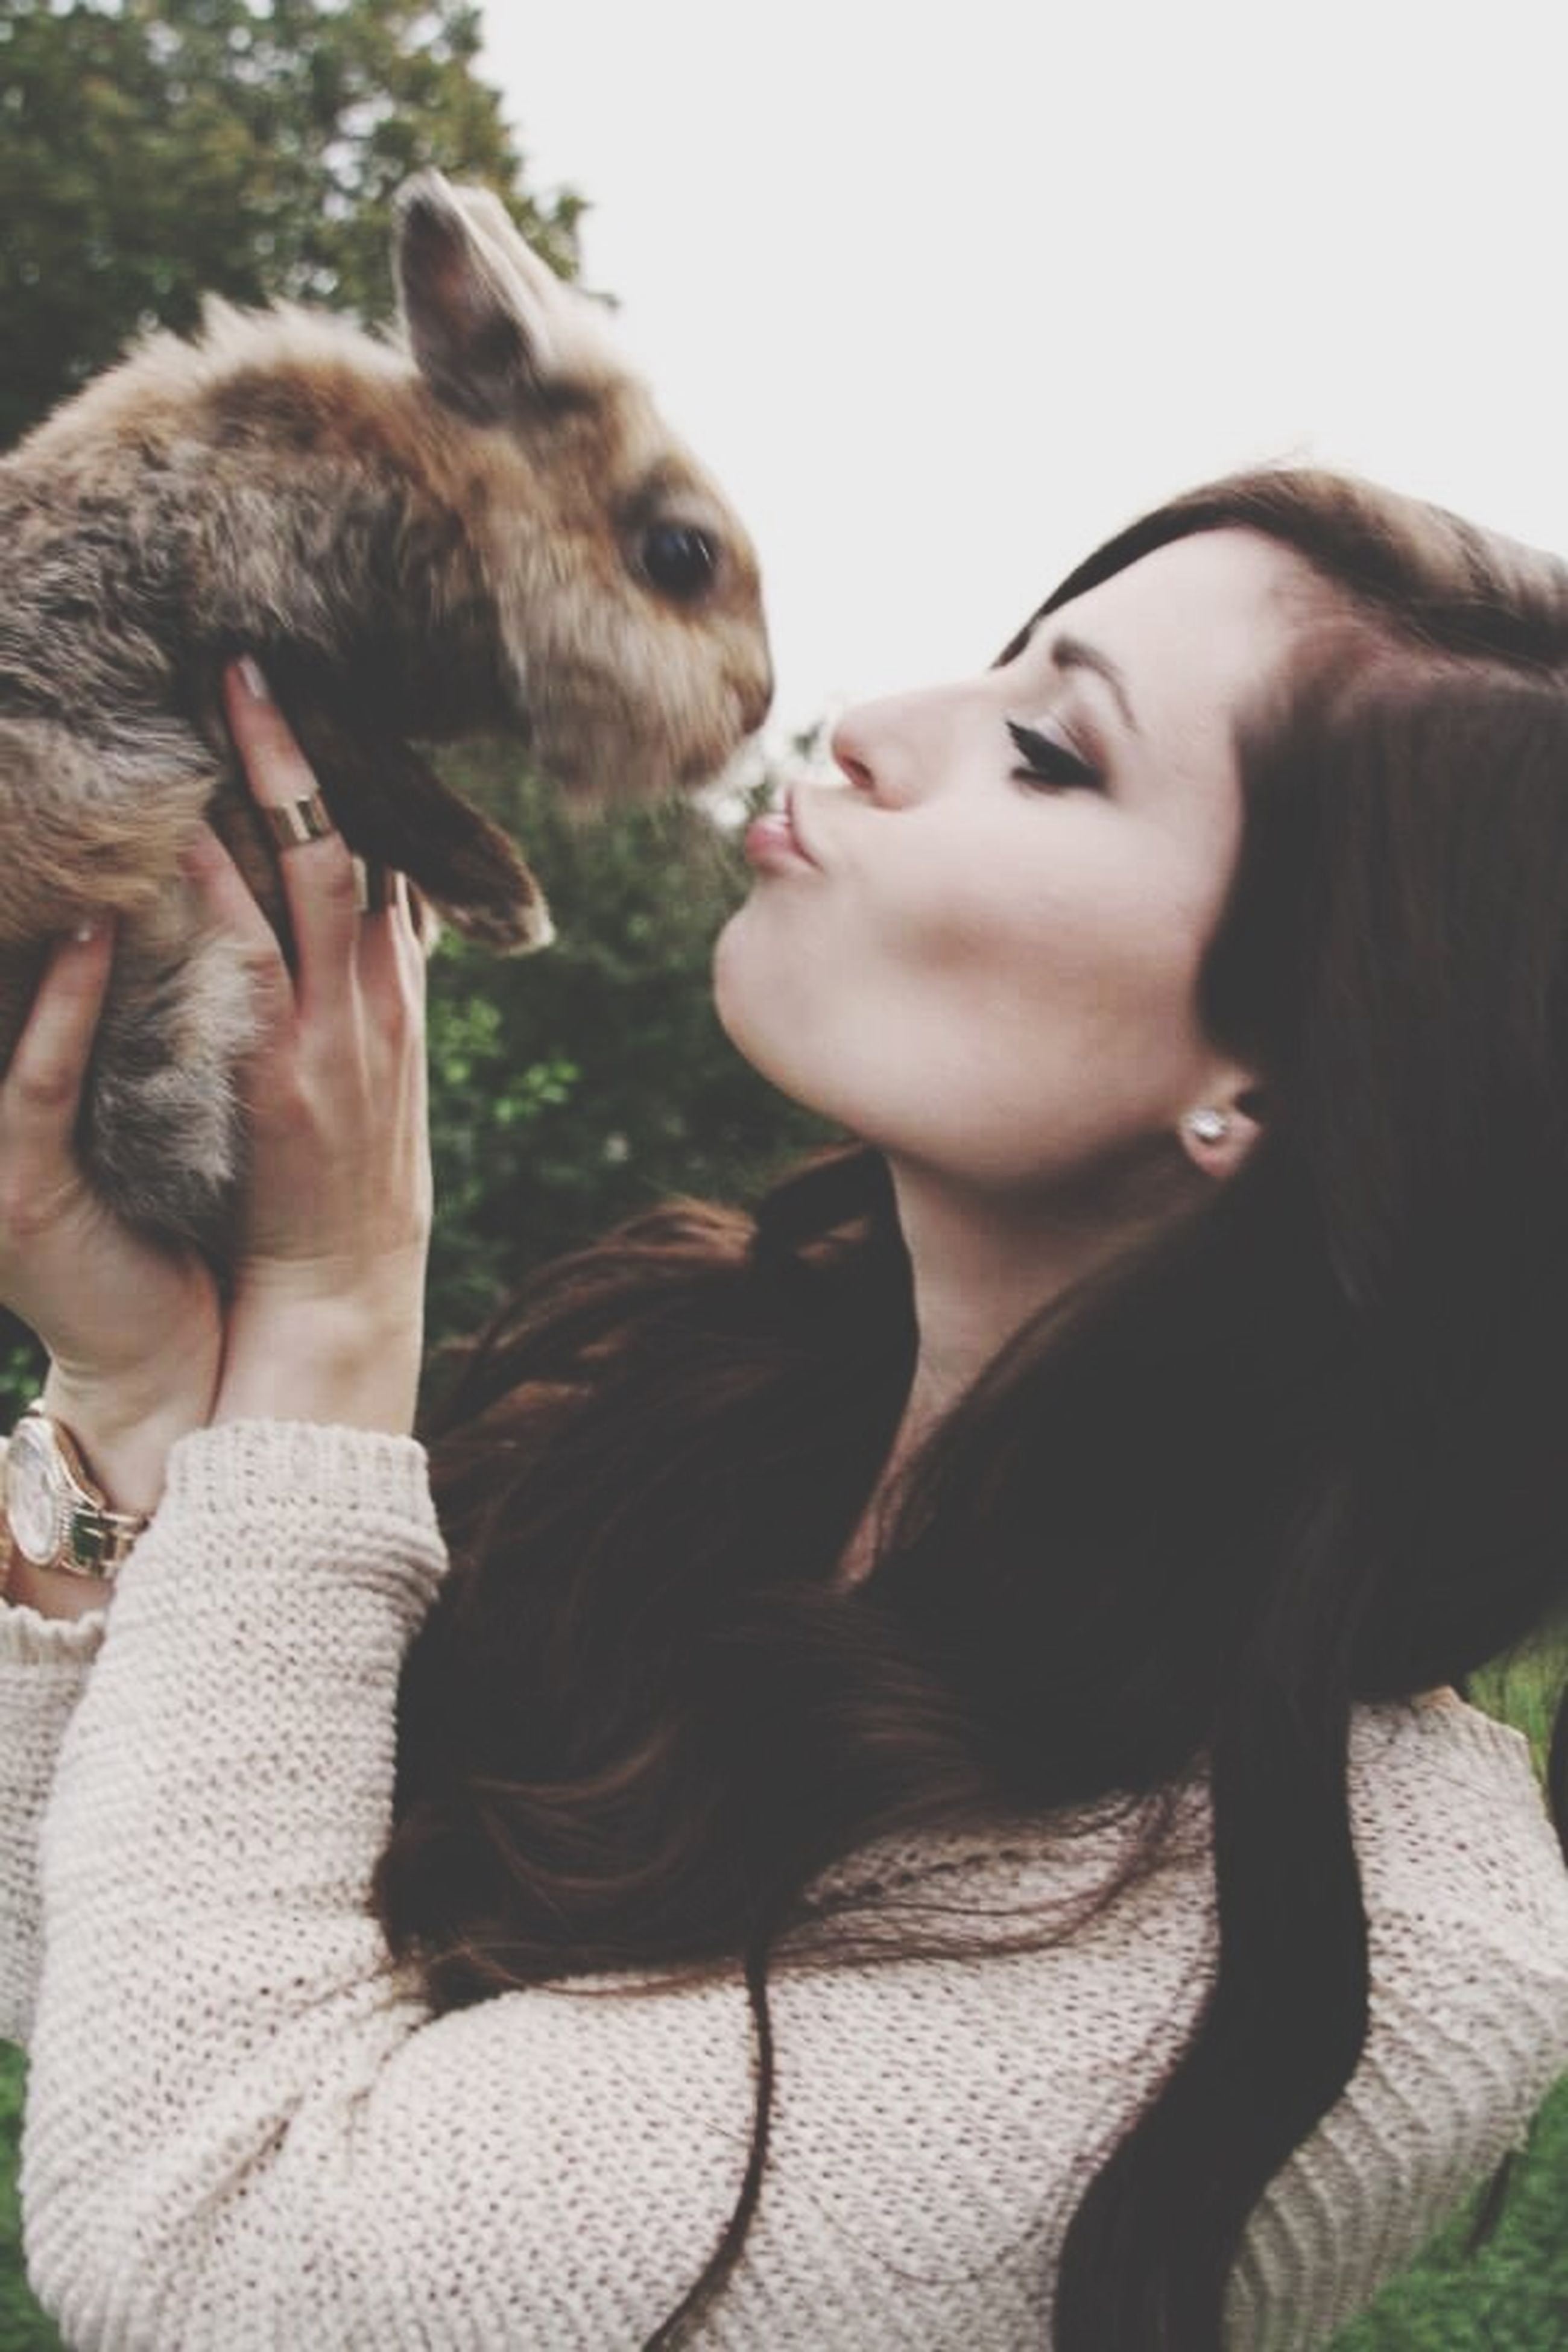 animal themes, mammal, person, lifestyles, young women, young adult, domestic animals, one animal, togetherness, leisure activity, portrait, bonding, looking at camera, headshot, pets, long hair, side view, casual clothing